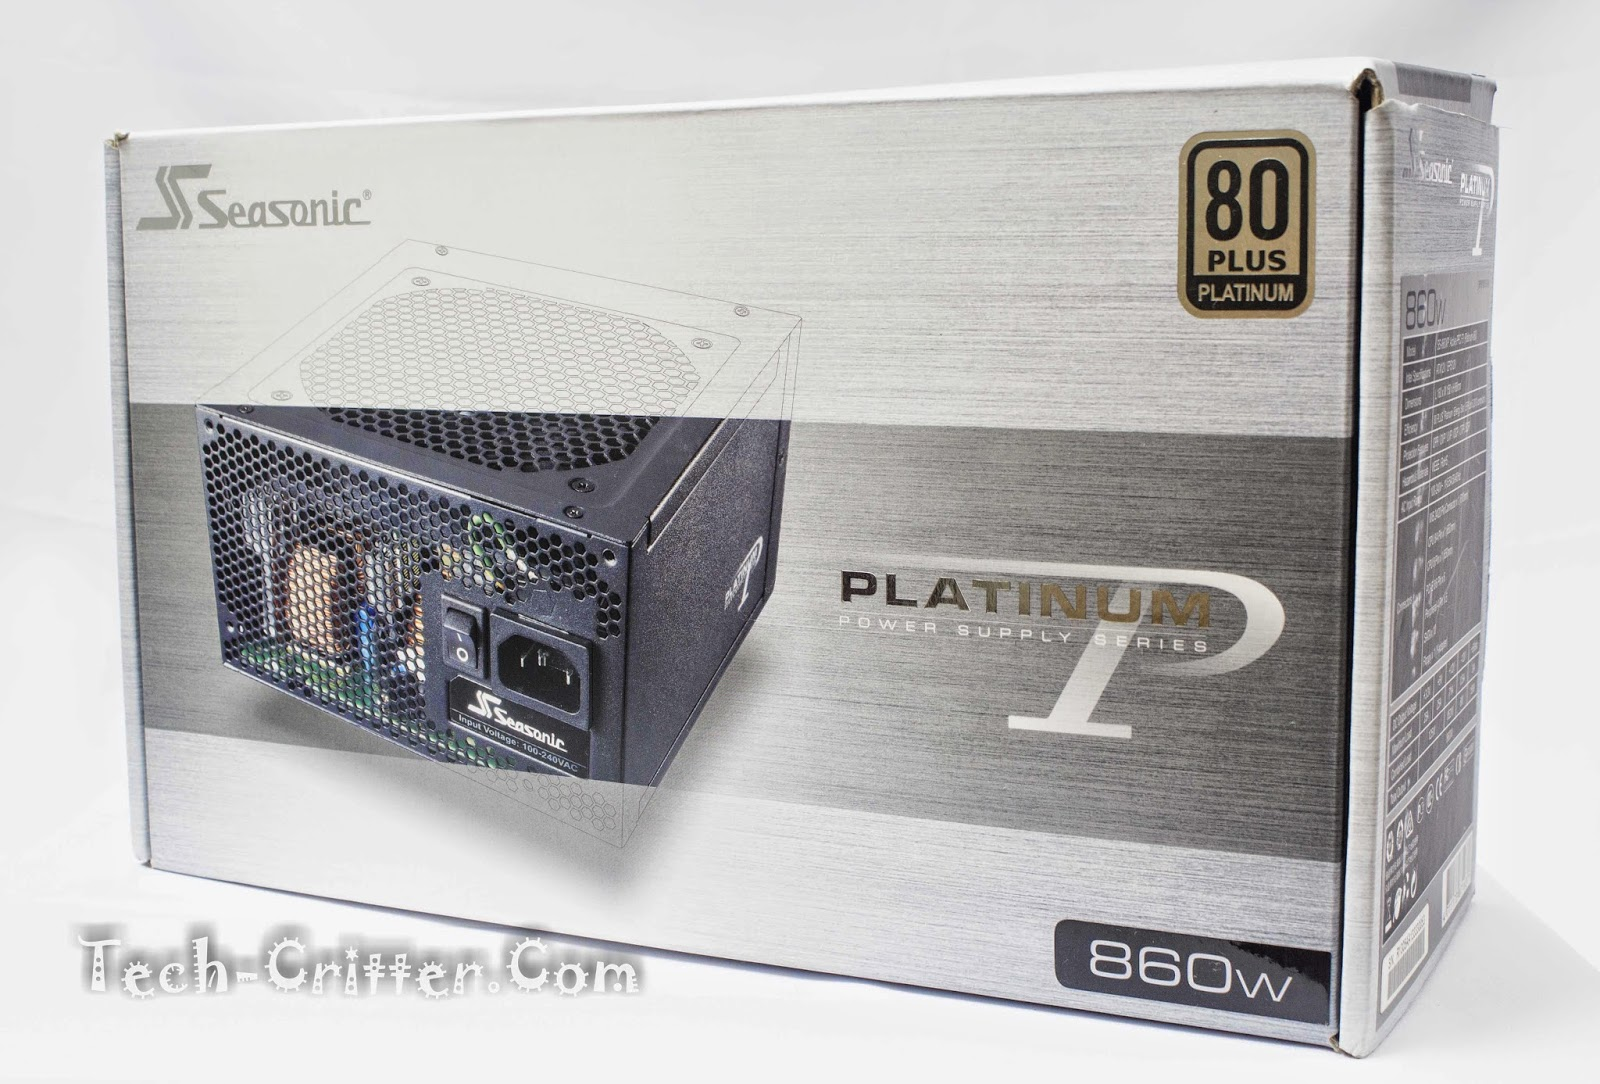 Unboxing & Overview: Seasonic Platinum Series 860W Power Supply Unit 48